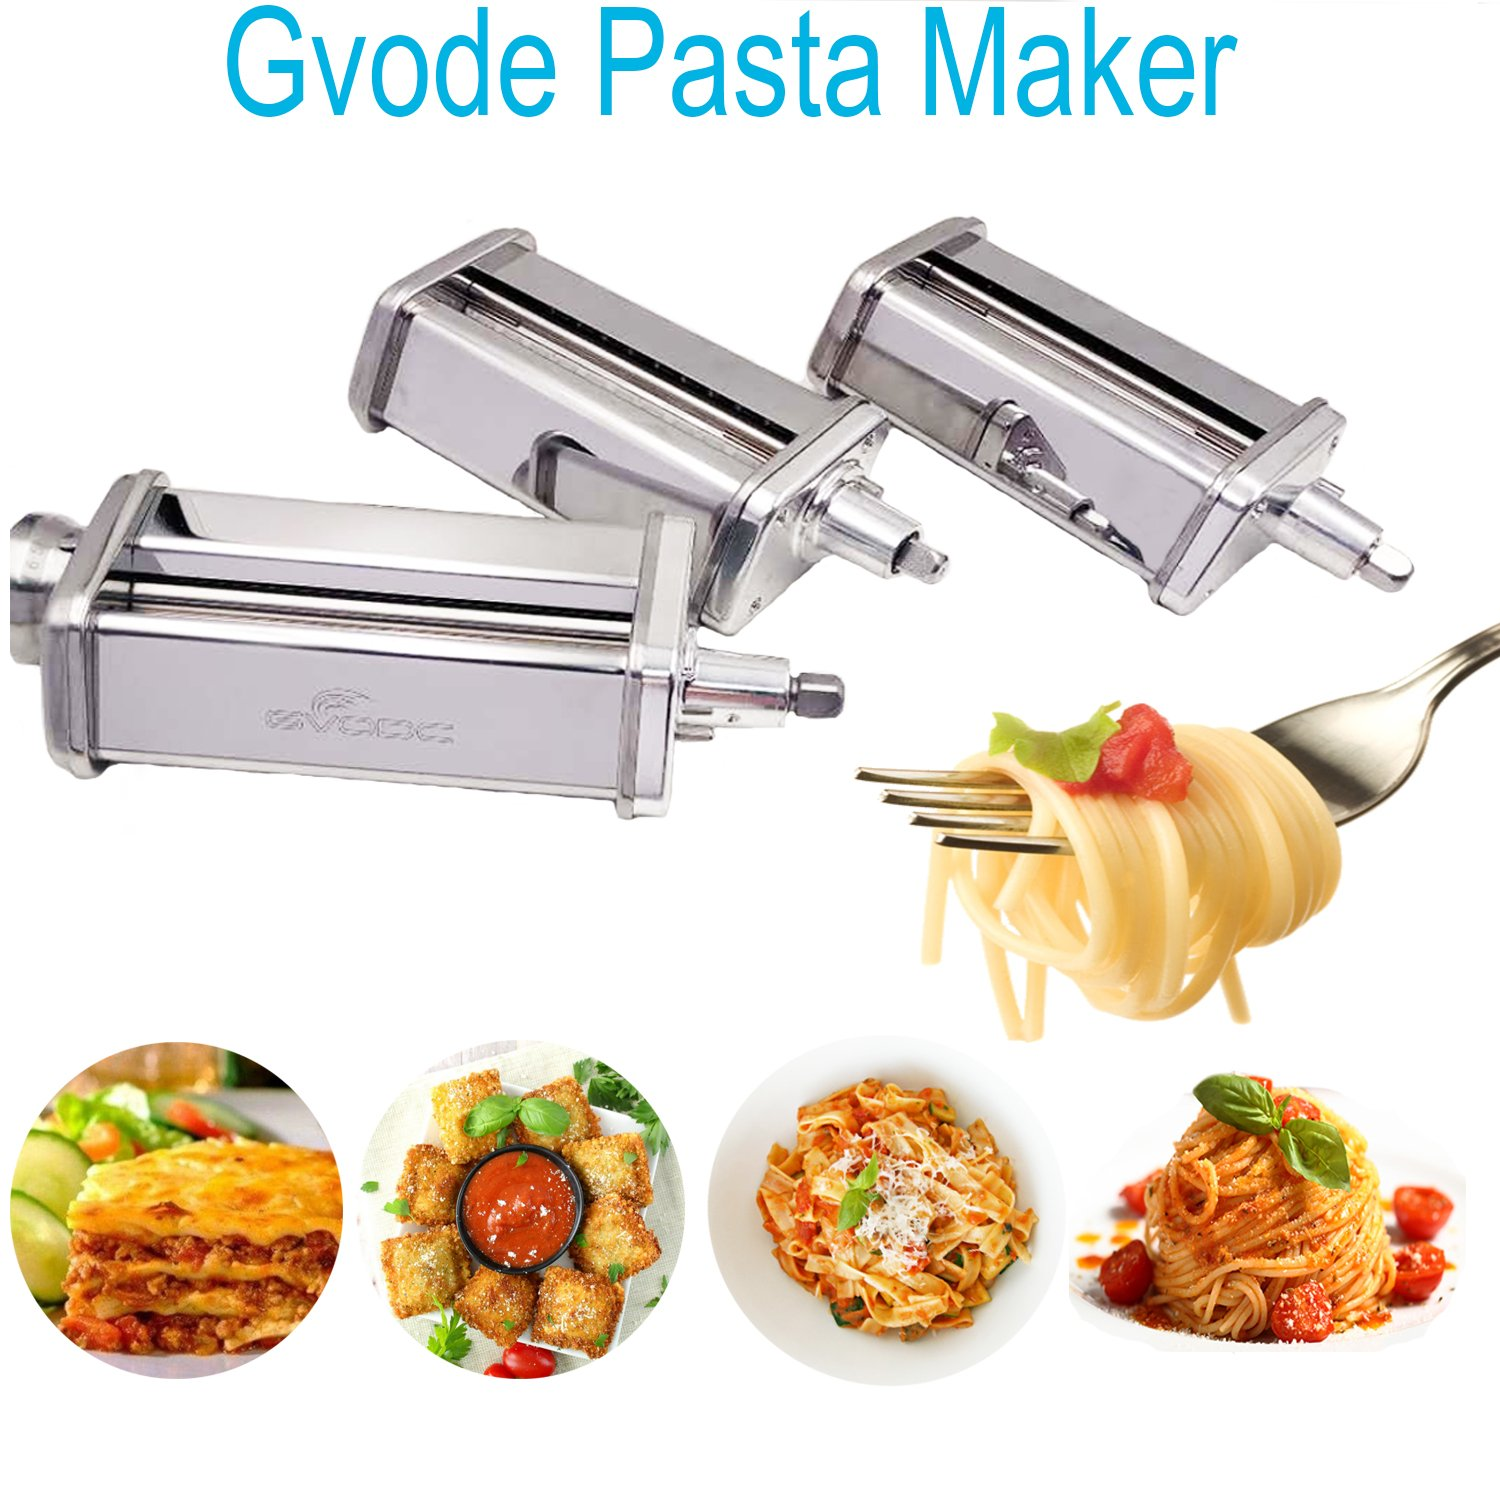 GVODE 3-Piece Pasta Roller and Cutter Set for KitchenAid Stand Mixers,Stainless Steel by GVODE (Image #2)